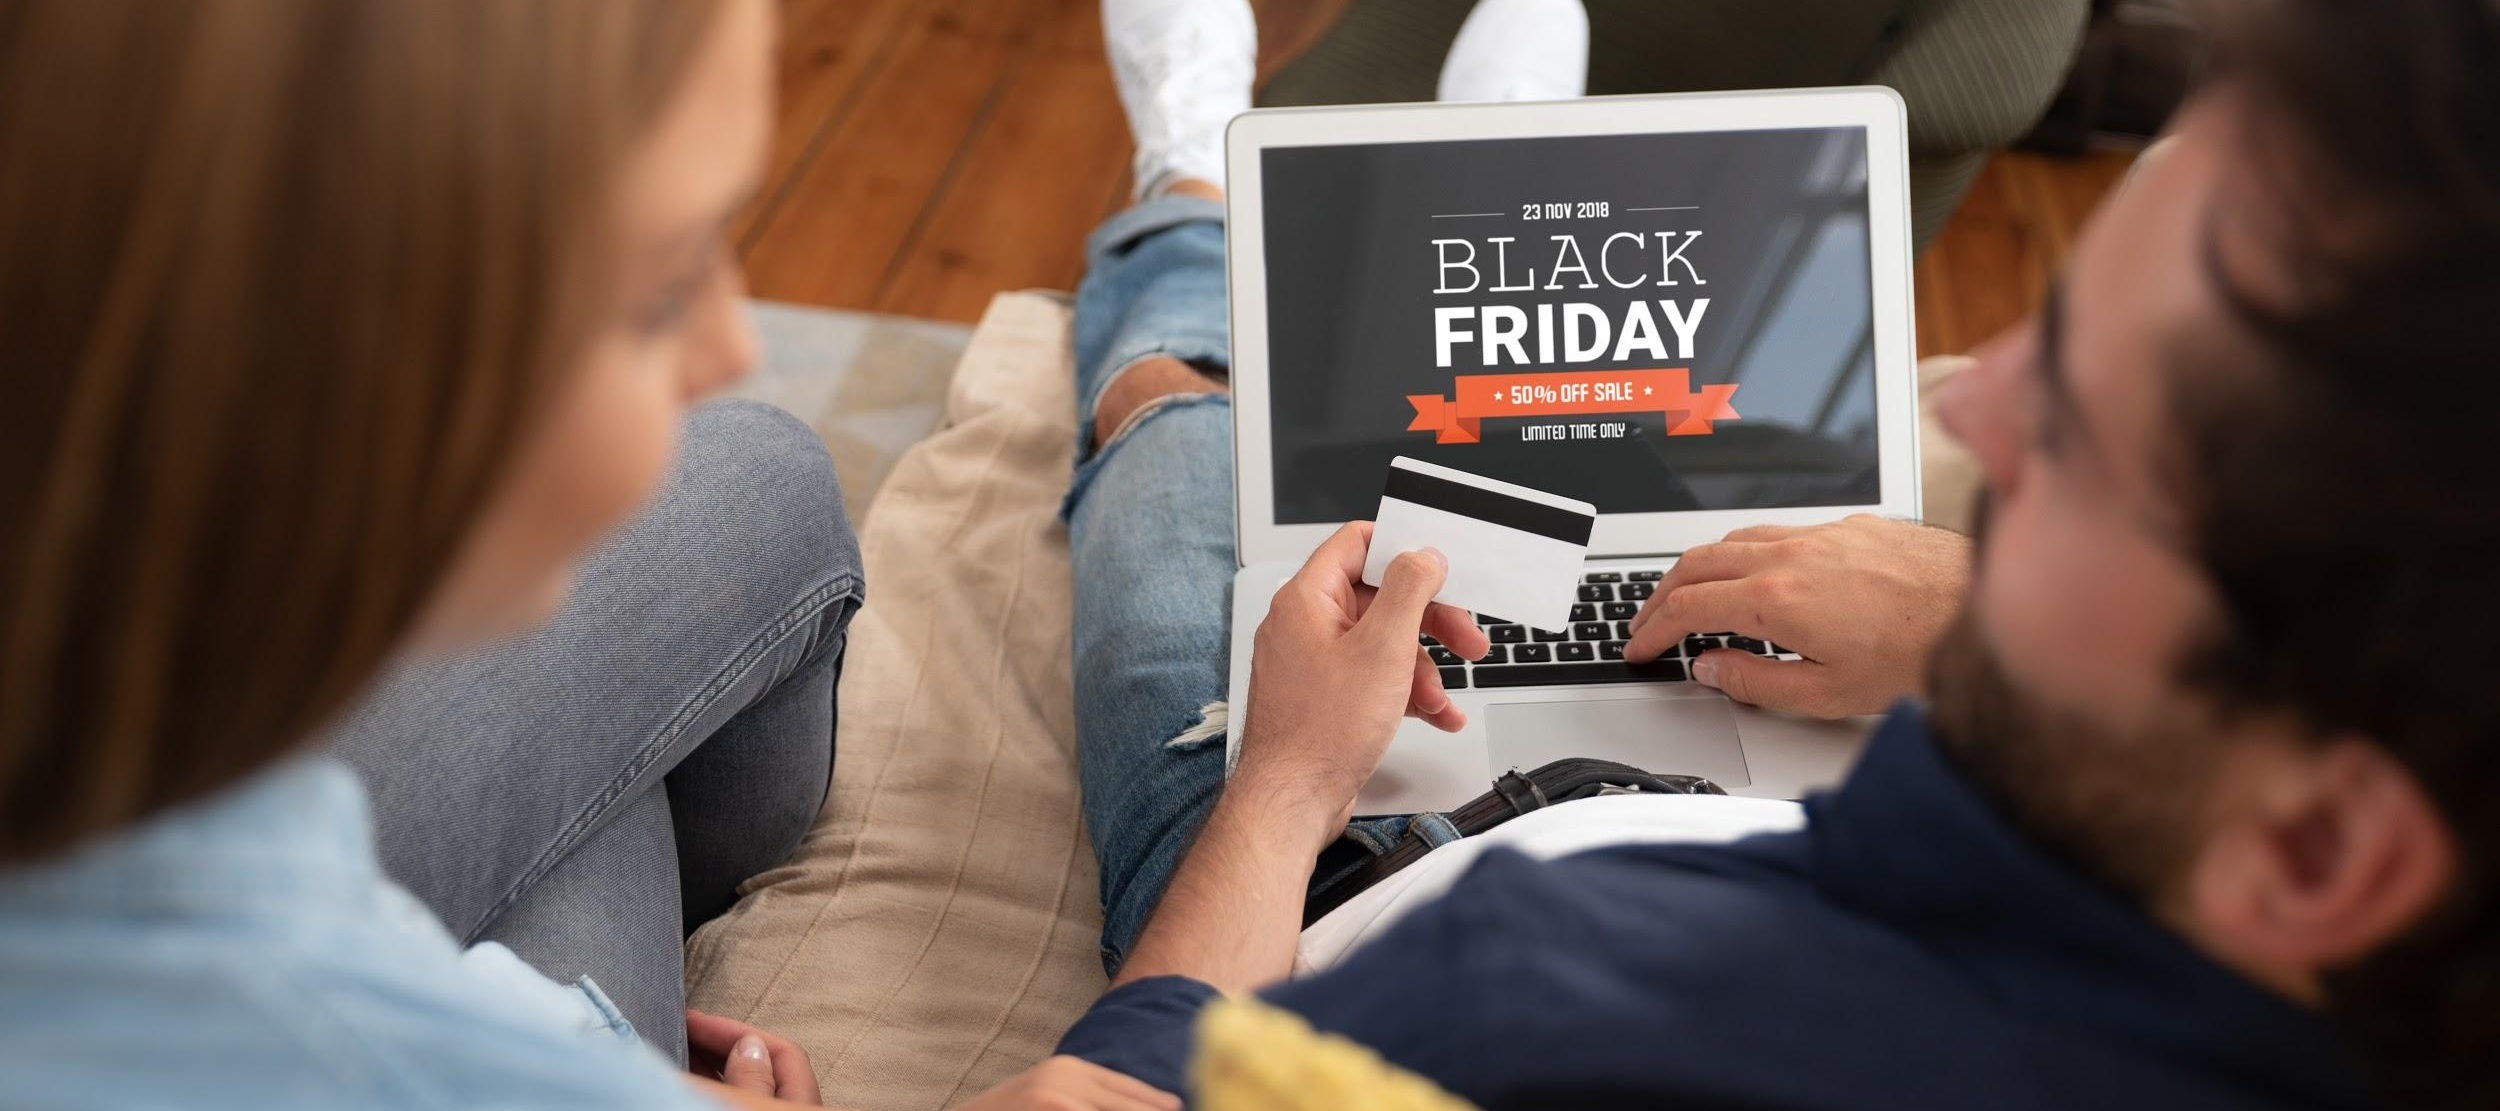 5 Misleading Advertising Ploys To Beware Of This Black Friday